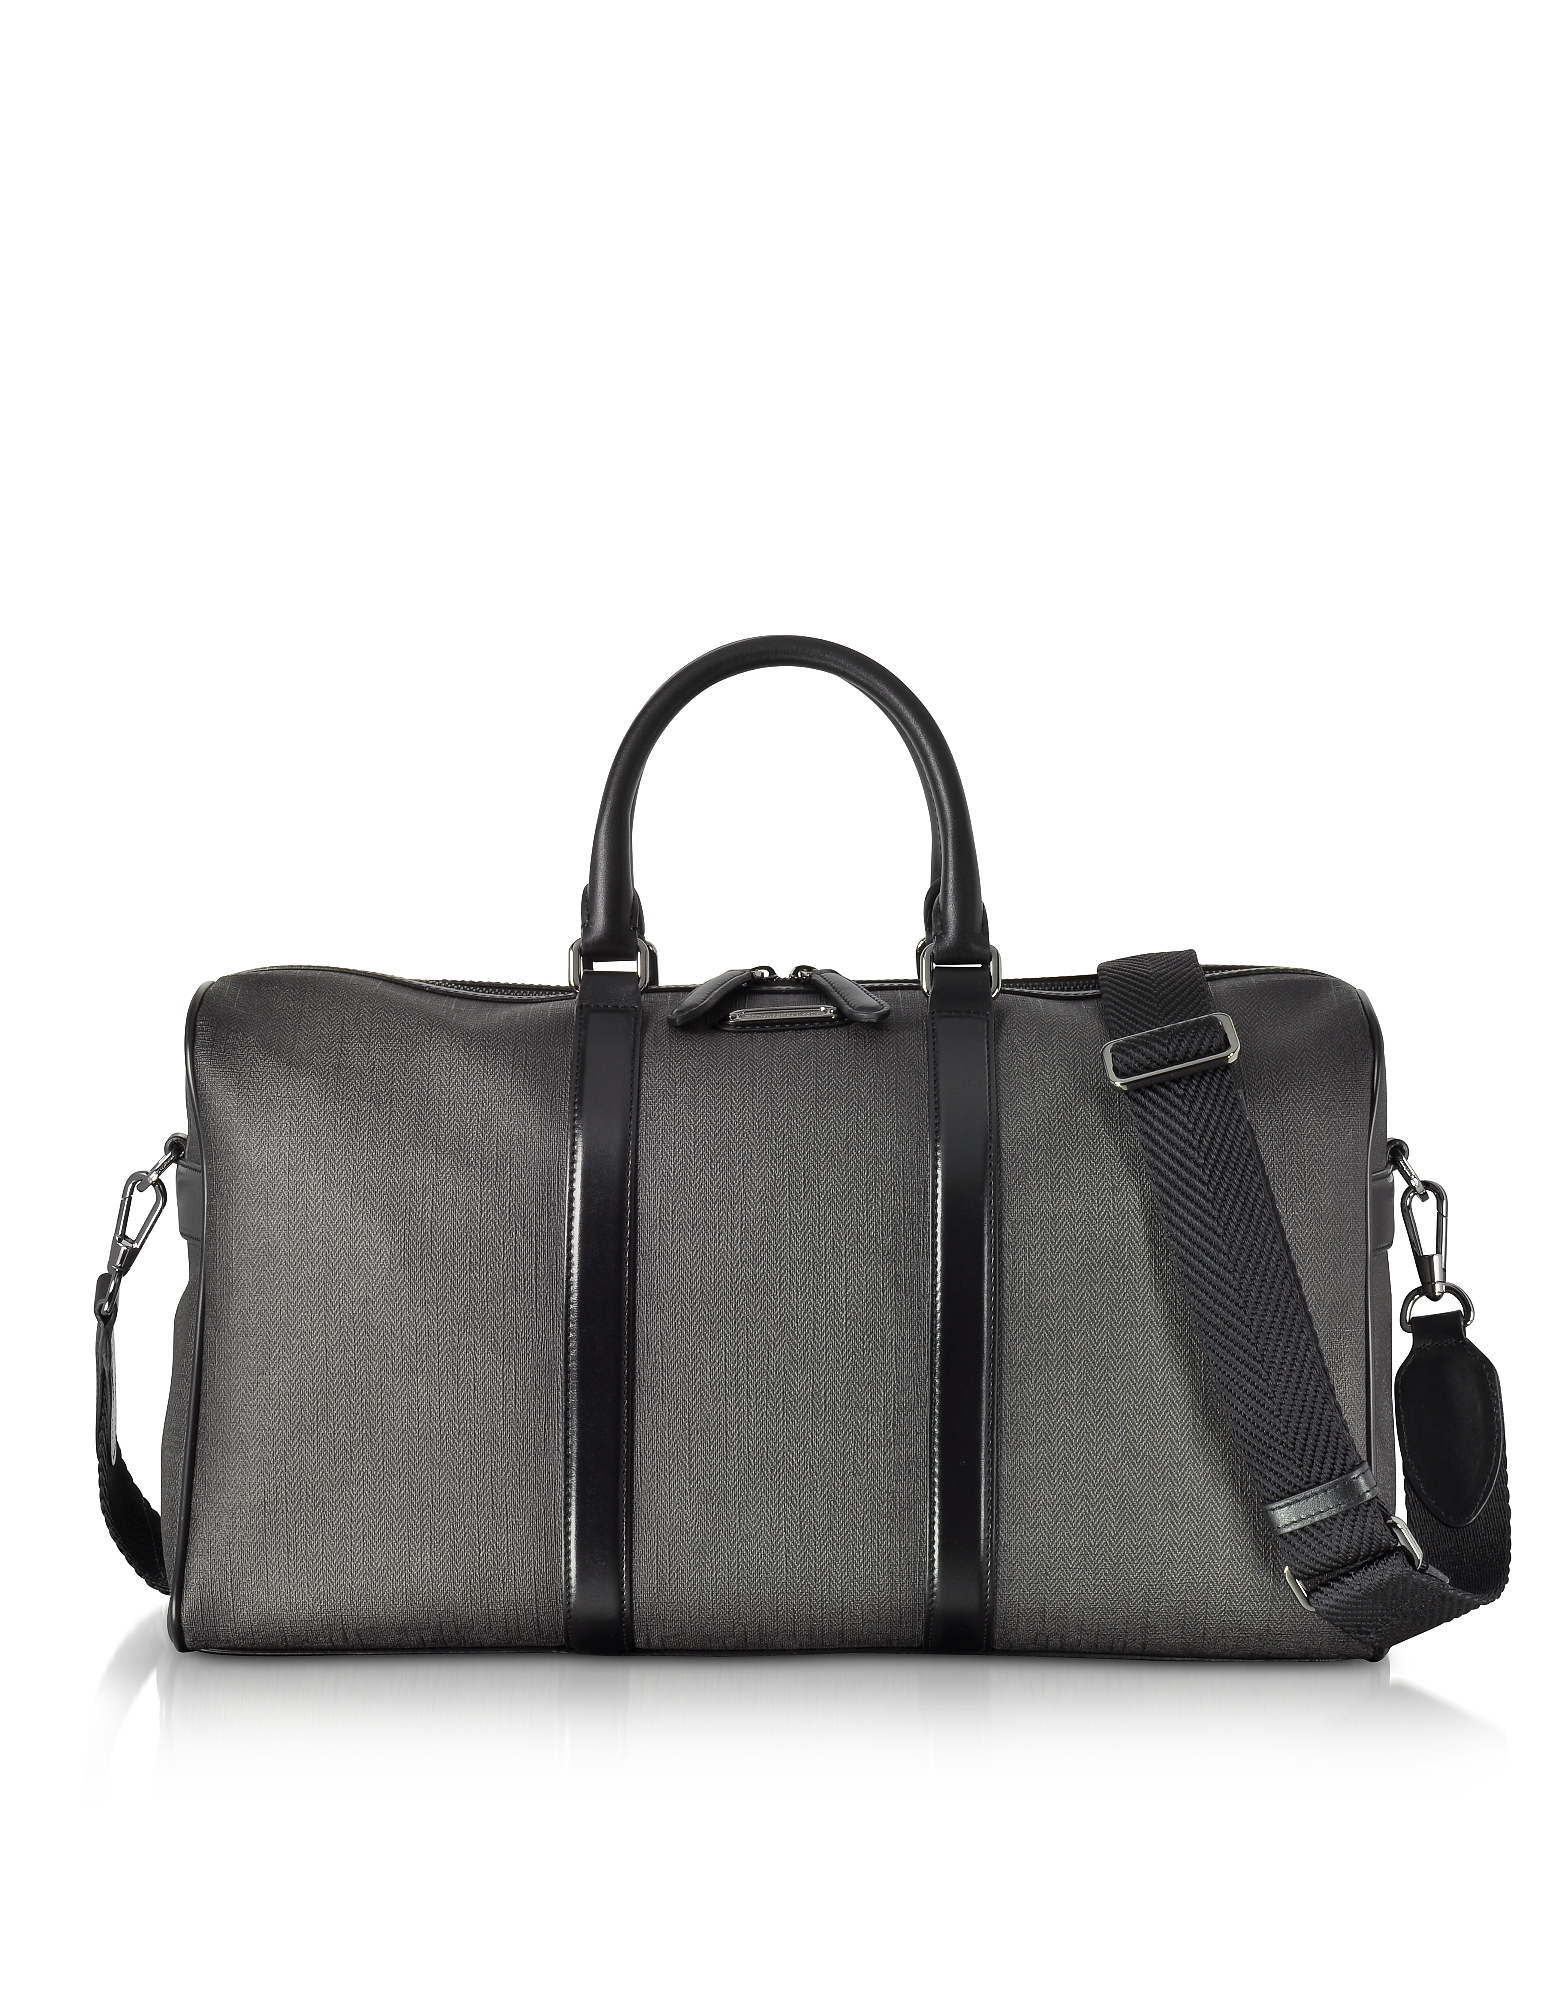 Ermenegildo Zegna Travel Bags, Slate Coated Canvas and Leather Men's Weekender Bag